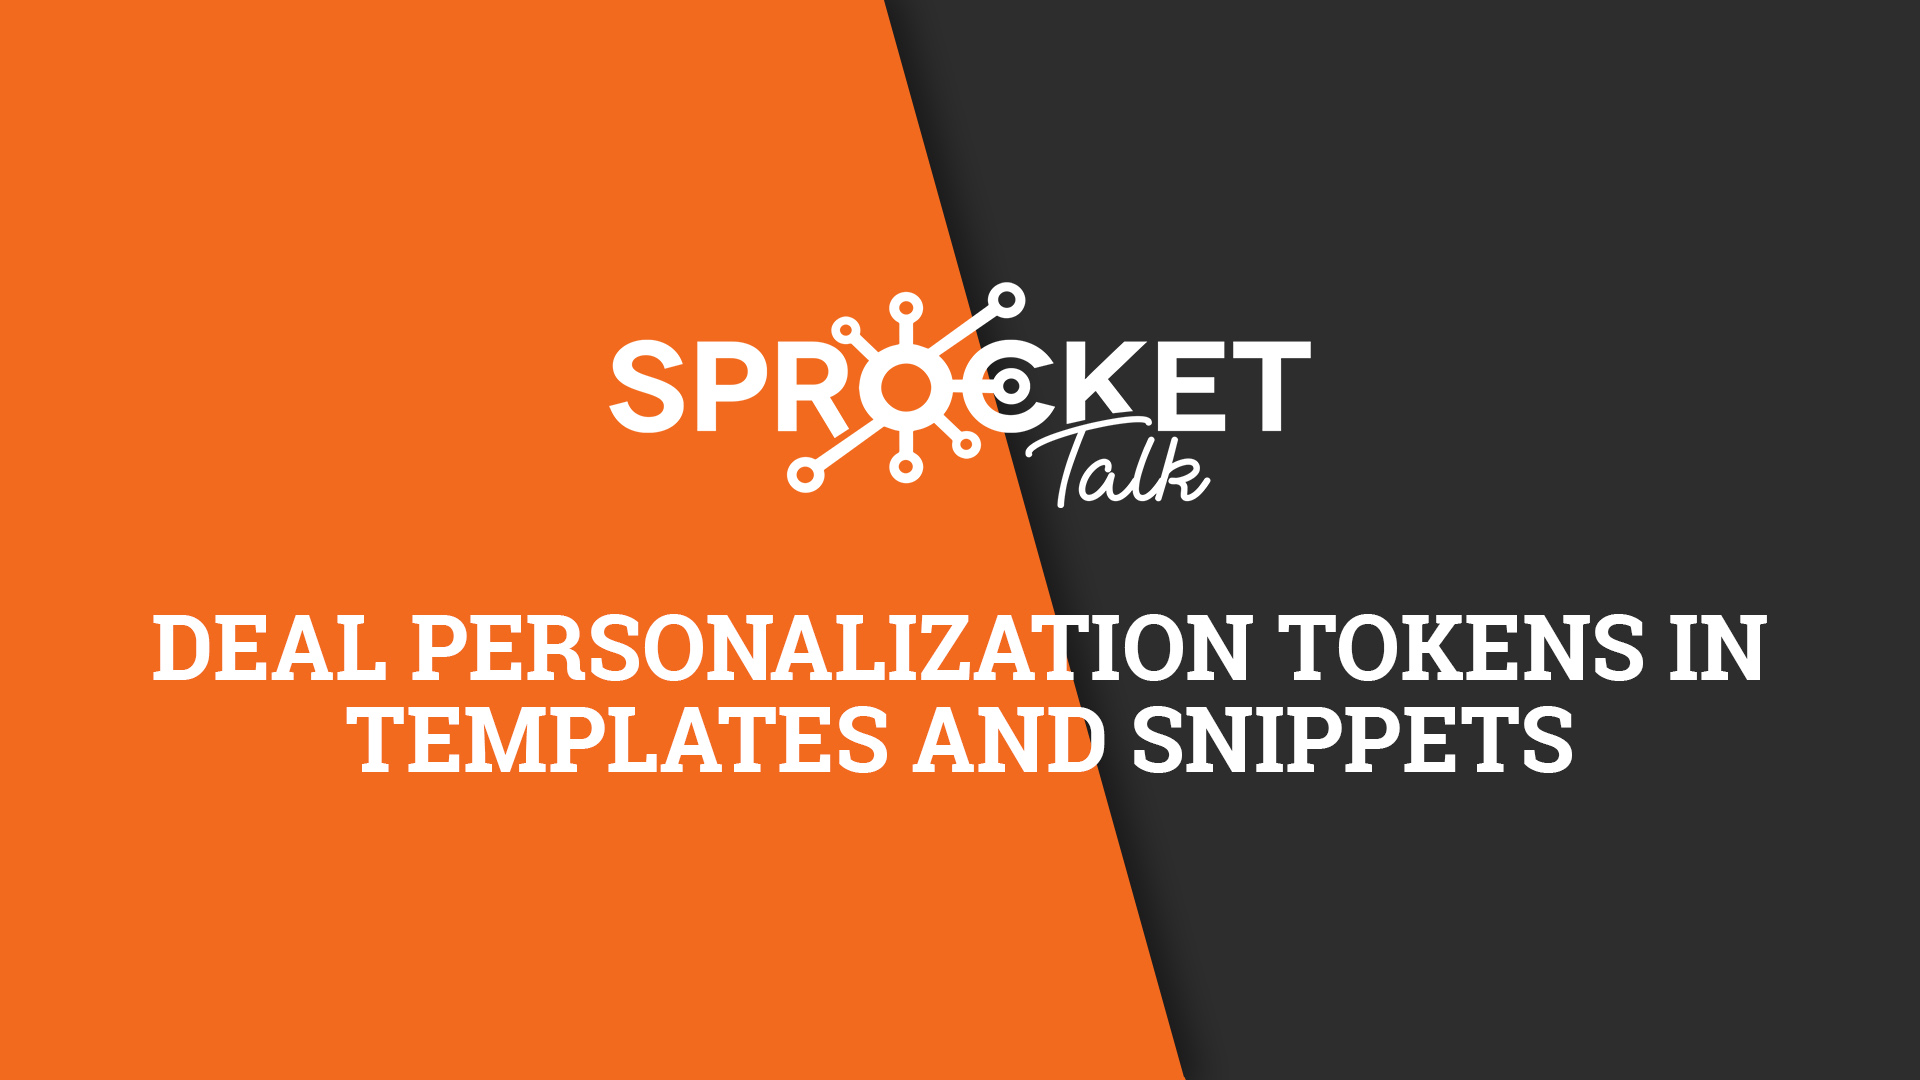 Deal Personalization Tokens in Templates and Snippets